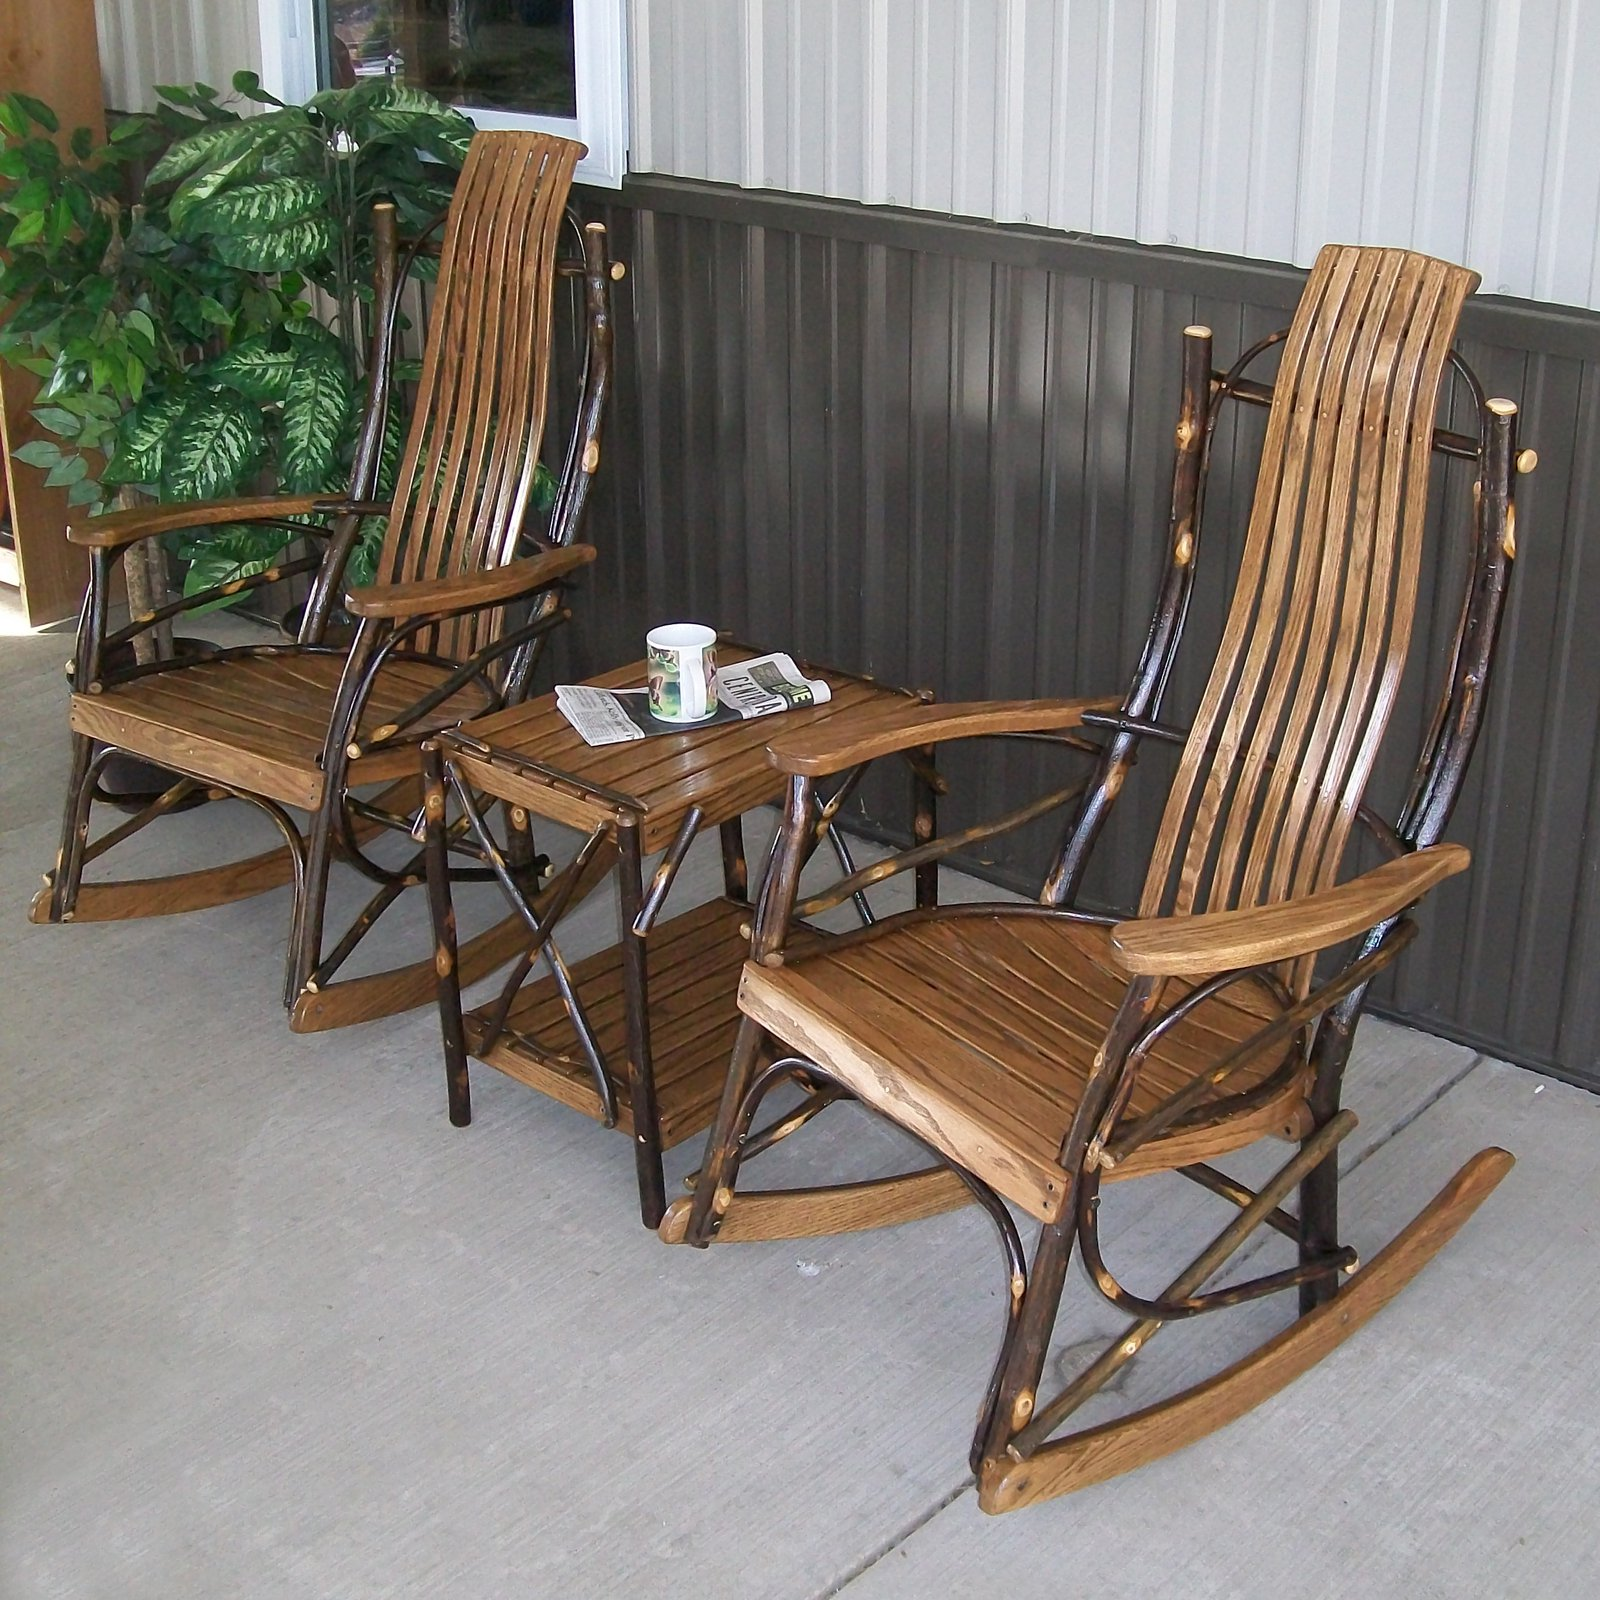 A & L Furniture Hickory 3 pc. 7-Slat Rocker Chat Set with Side Table